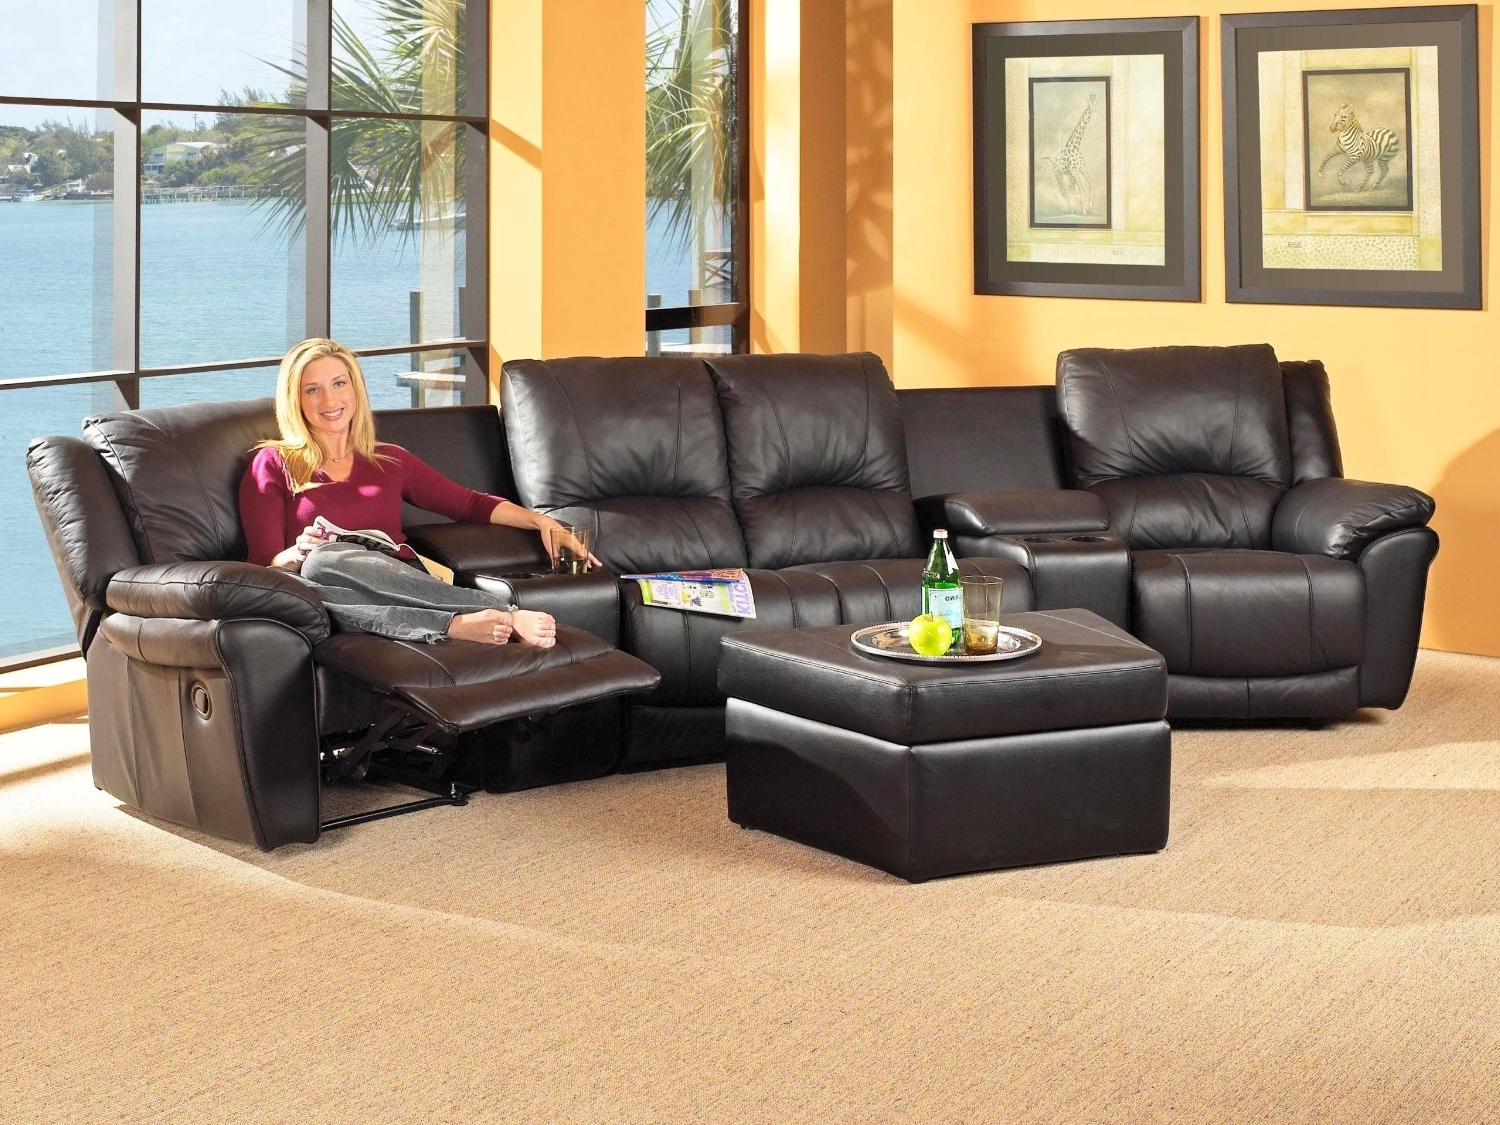 Well Liked Sectional Sofas For Small Spaces With Recliners In Small Space Sectional Sofa – Decofurnish (View 3 of 15)